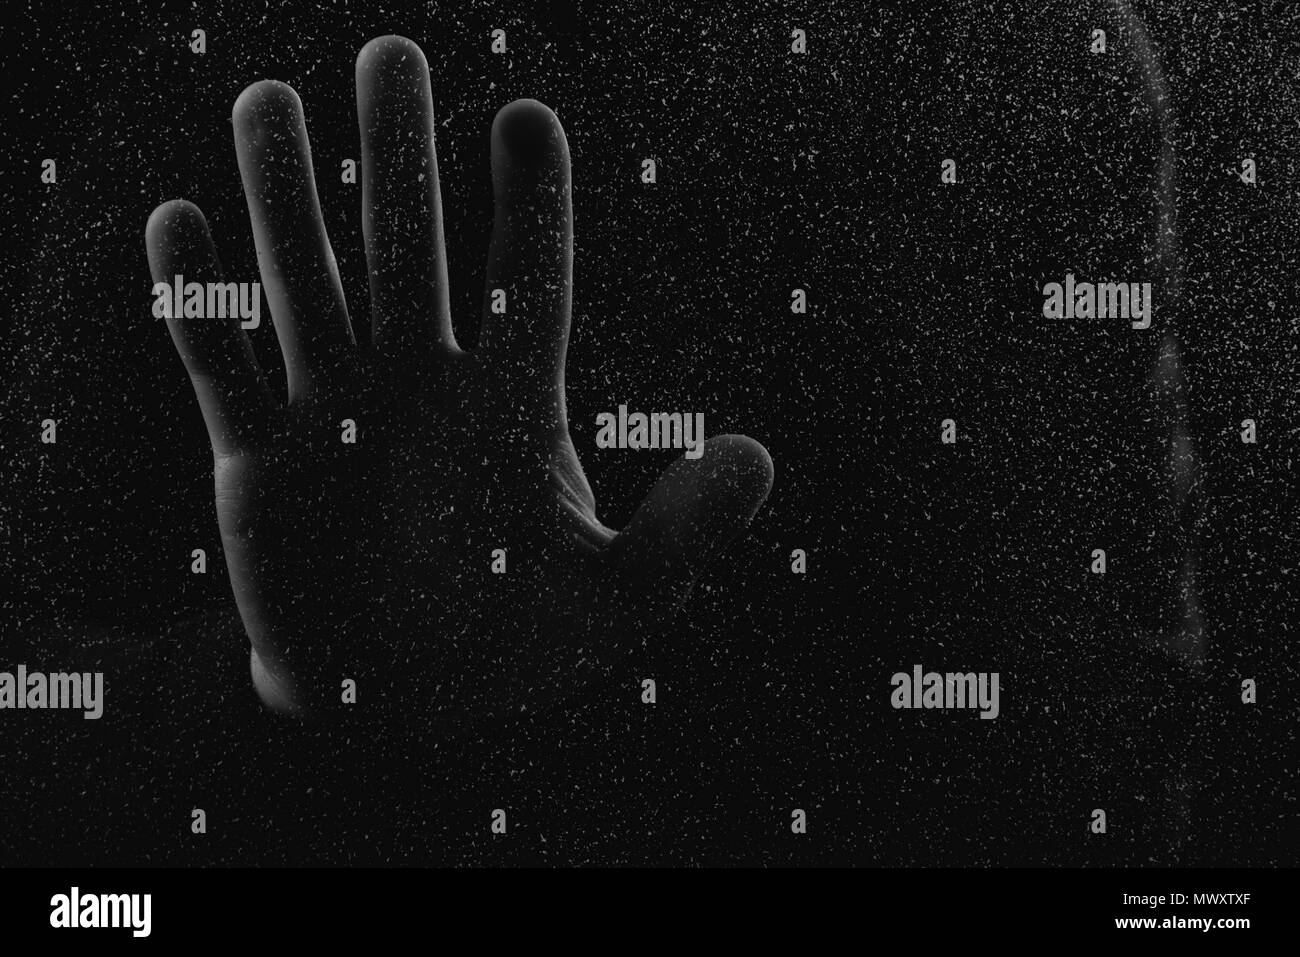 close-up partial view of human hand touching glass with glitches - Stock Image